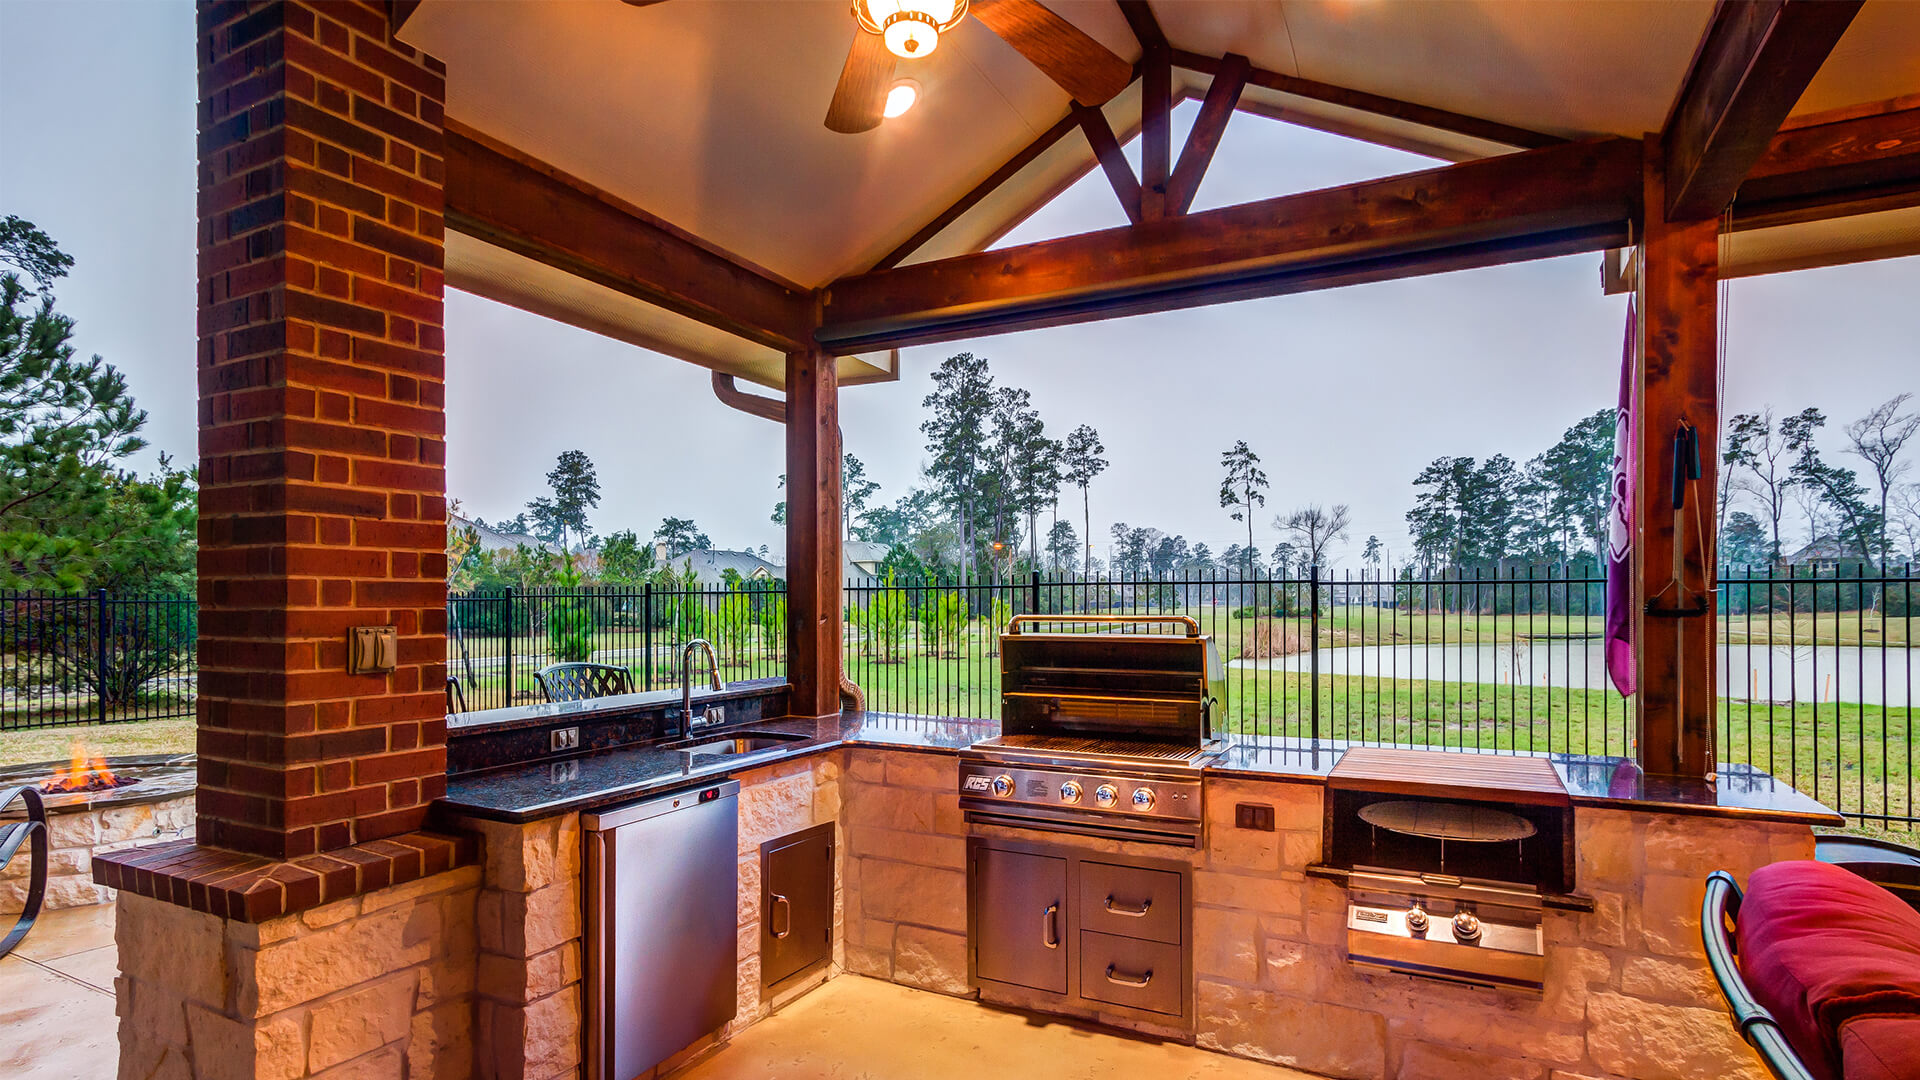 Custom Outdoor Kitchen with RCS Grill, Double Side burner, Refrigerator and Sink